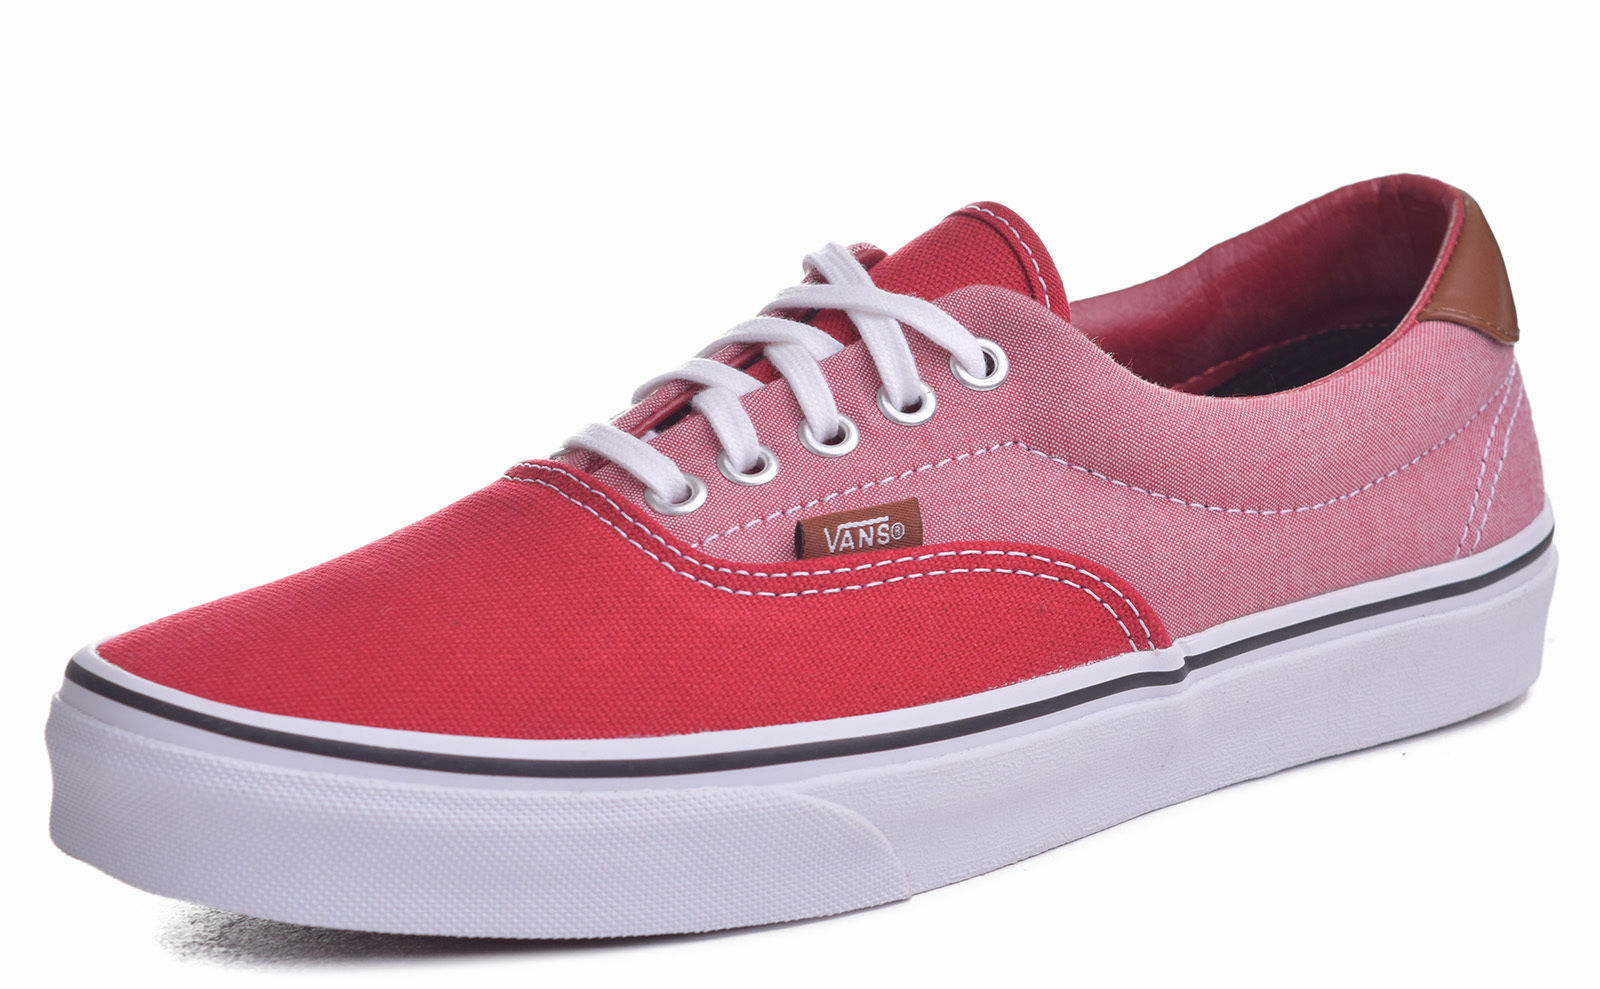 0f9632c4c4 VANS off The Wall Era 59 Canvas   Chambray Chili Red Shoes Mens 10 ...